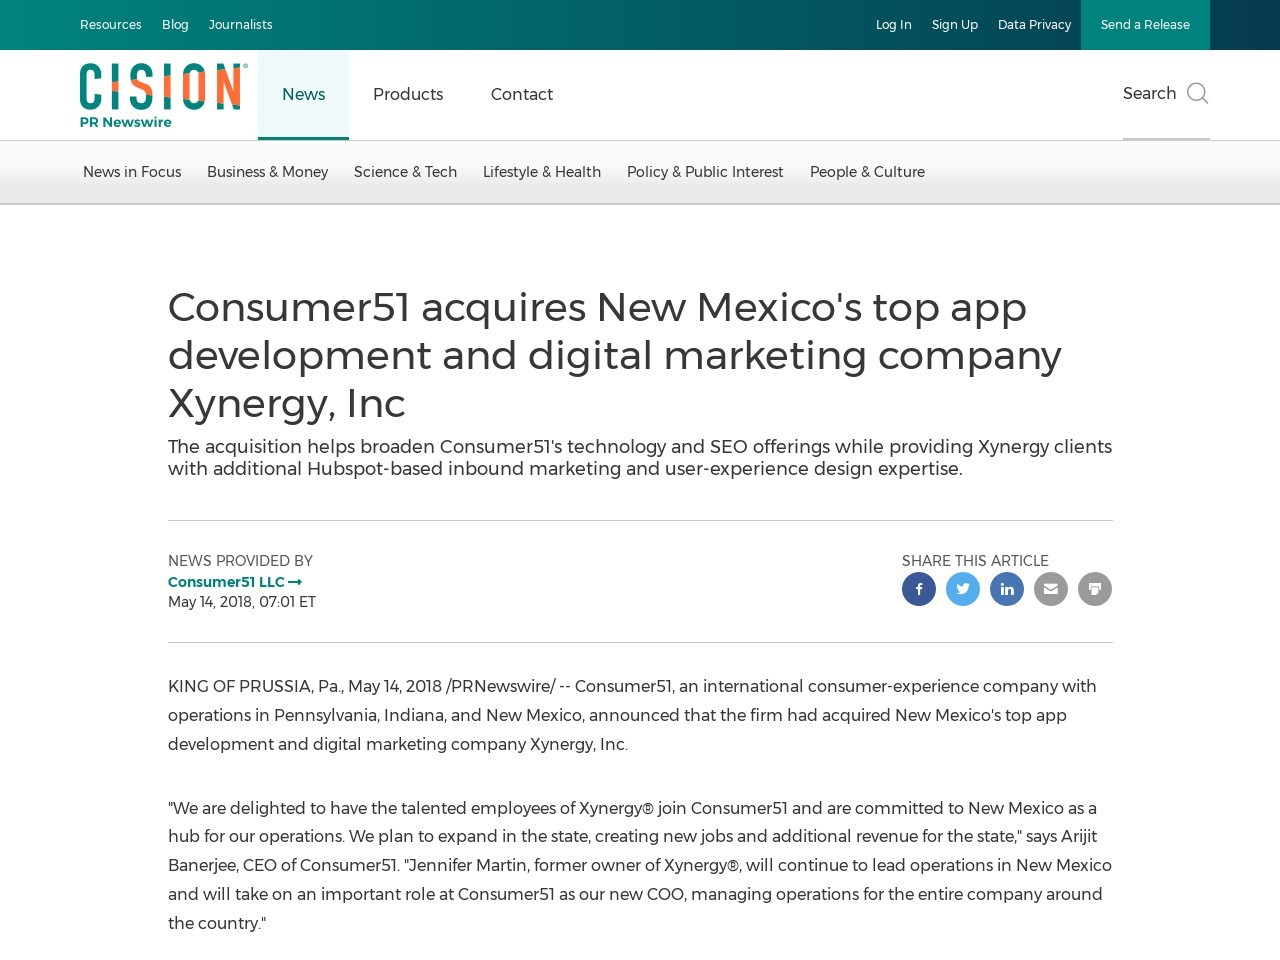 Consumer51 acquires New Mexico's top app development and digital marketing company Xynergy, Inc